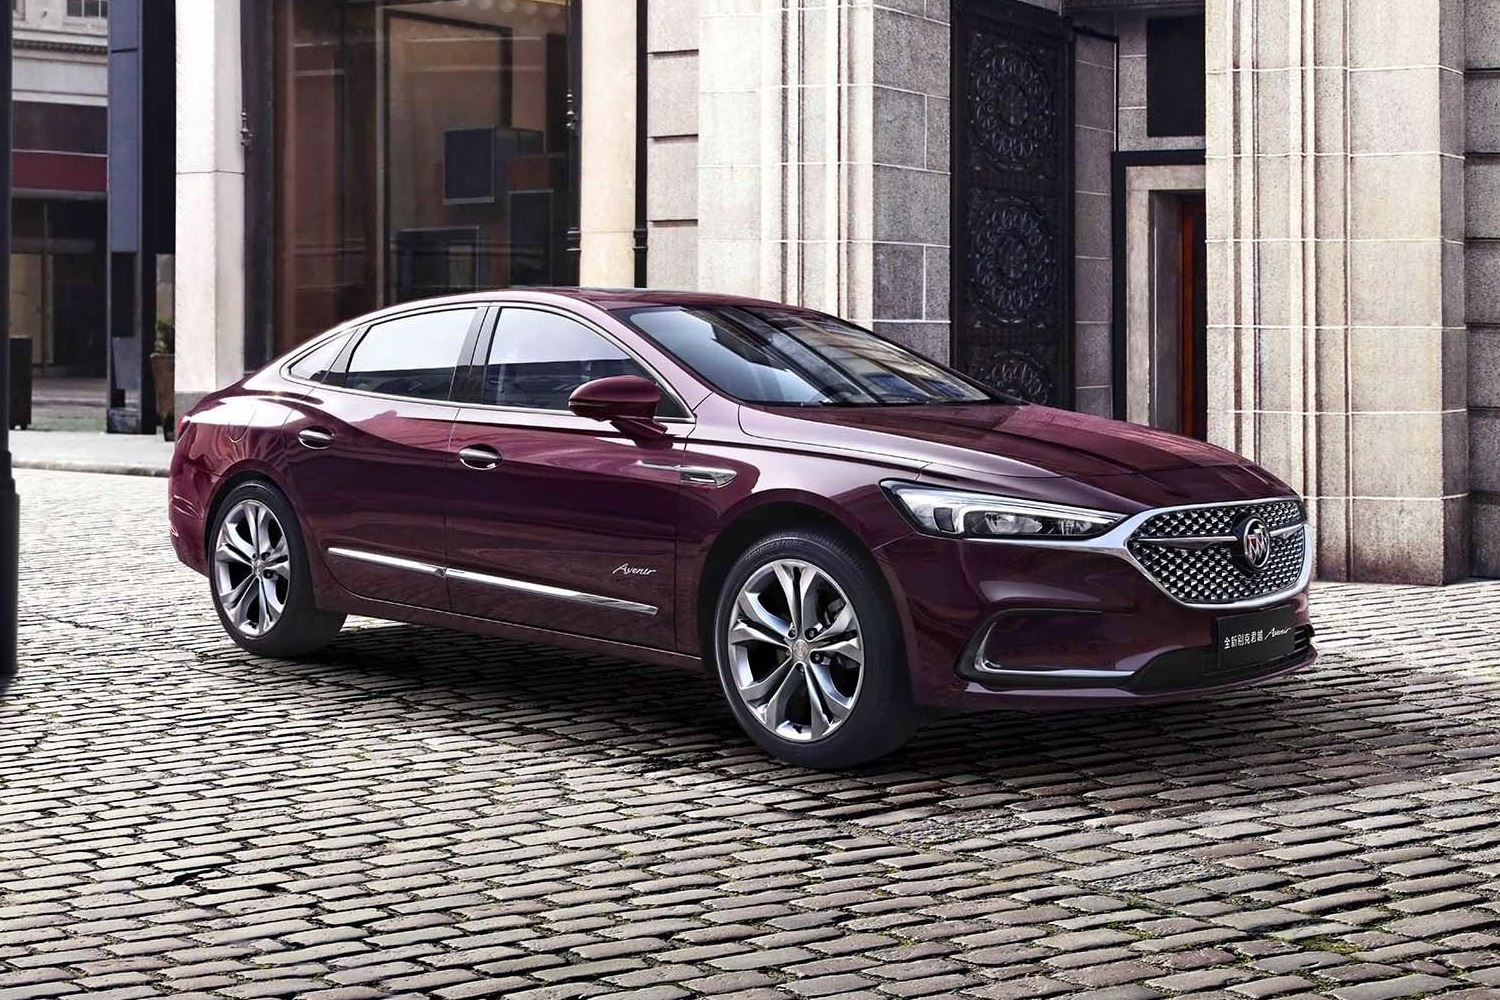 2020 Buick Lacrosse Info, Specs, Wiki | Gm Authority 2022 Buick Regal Brochure, Build, Models